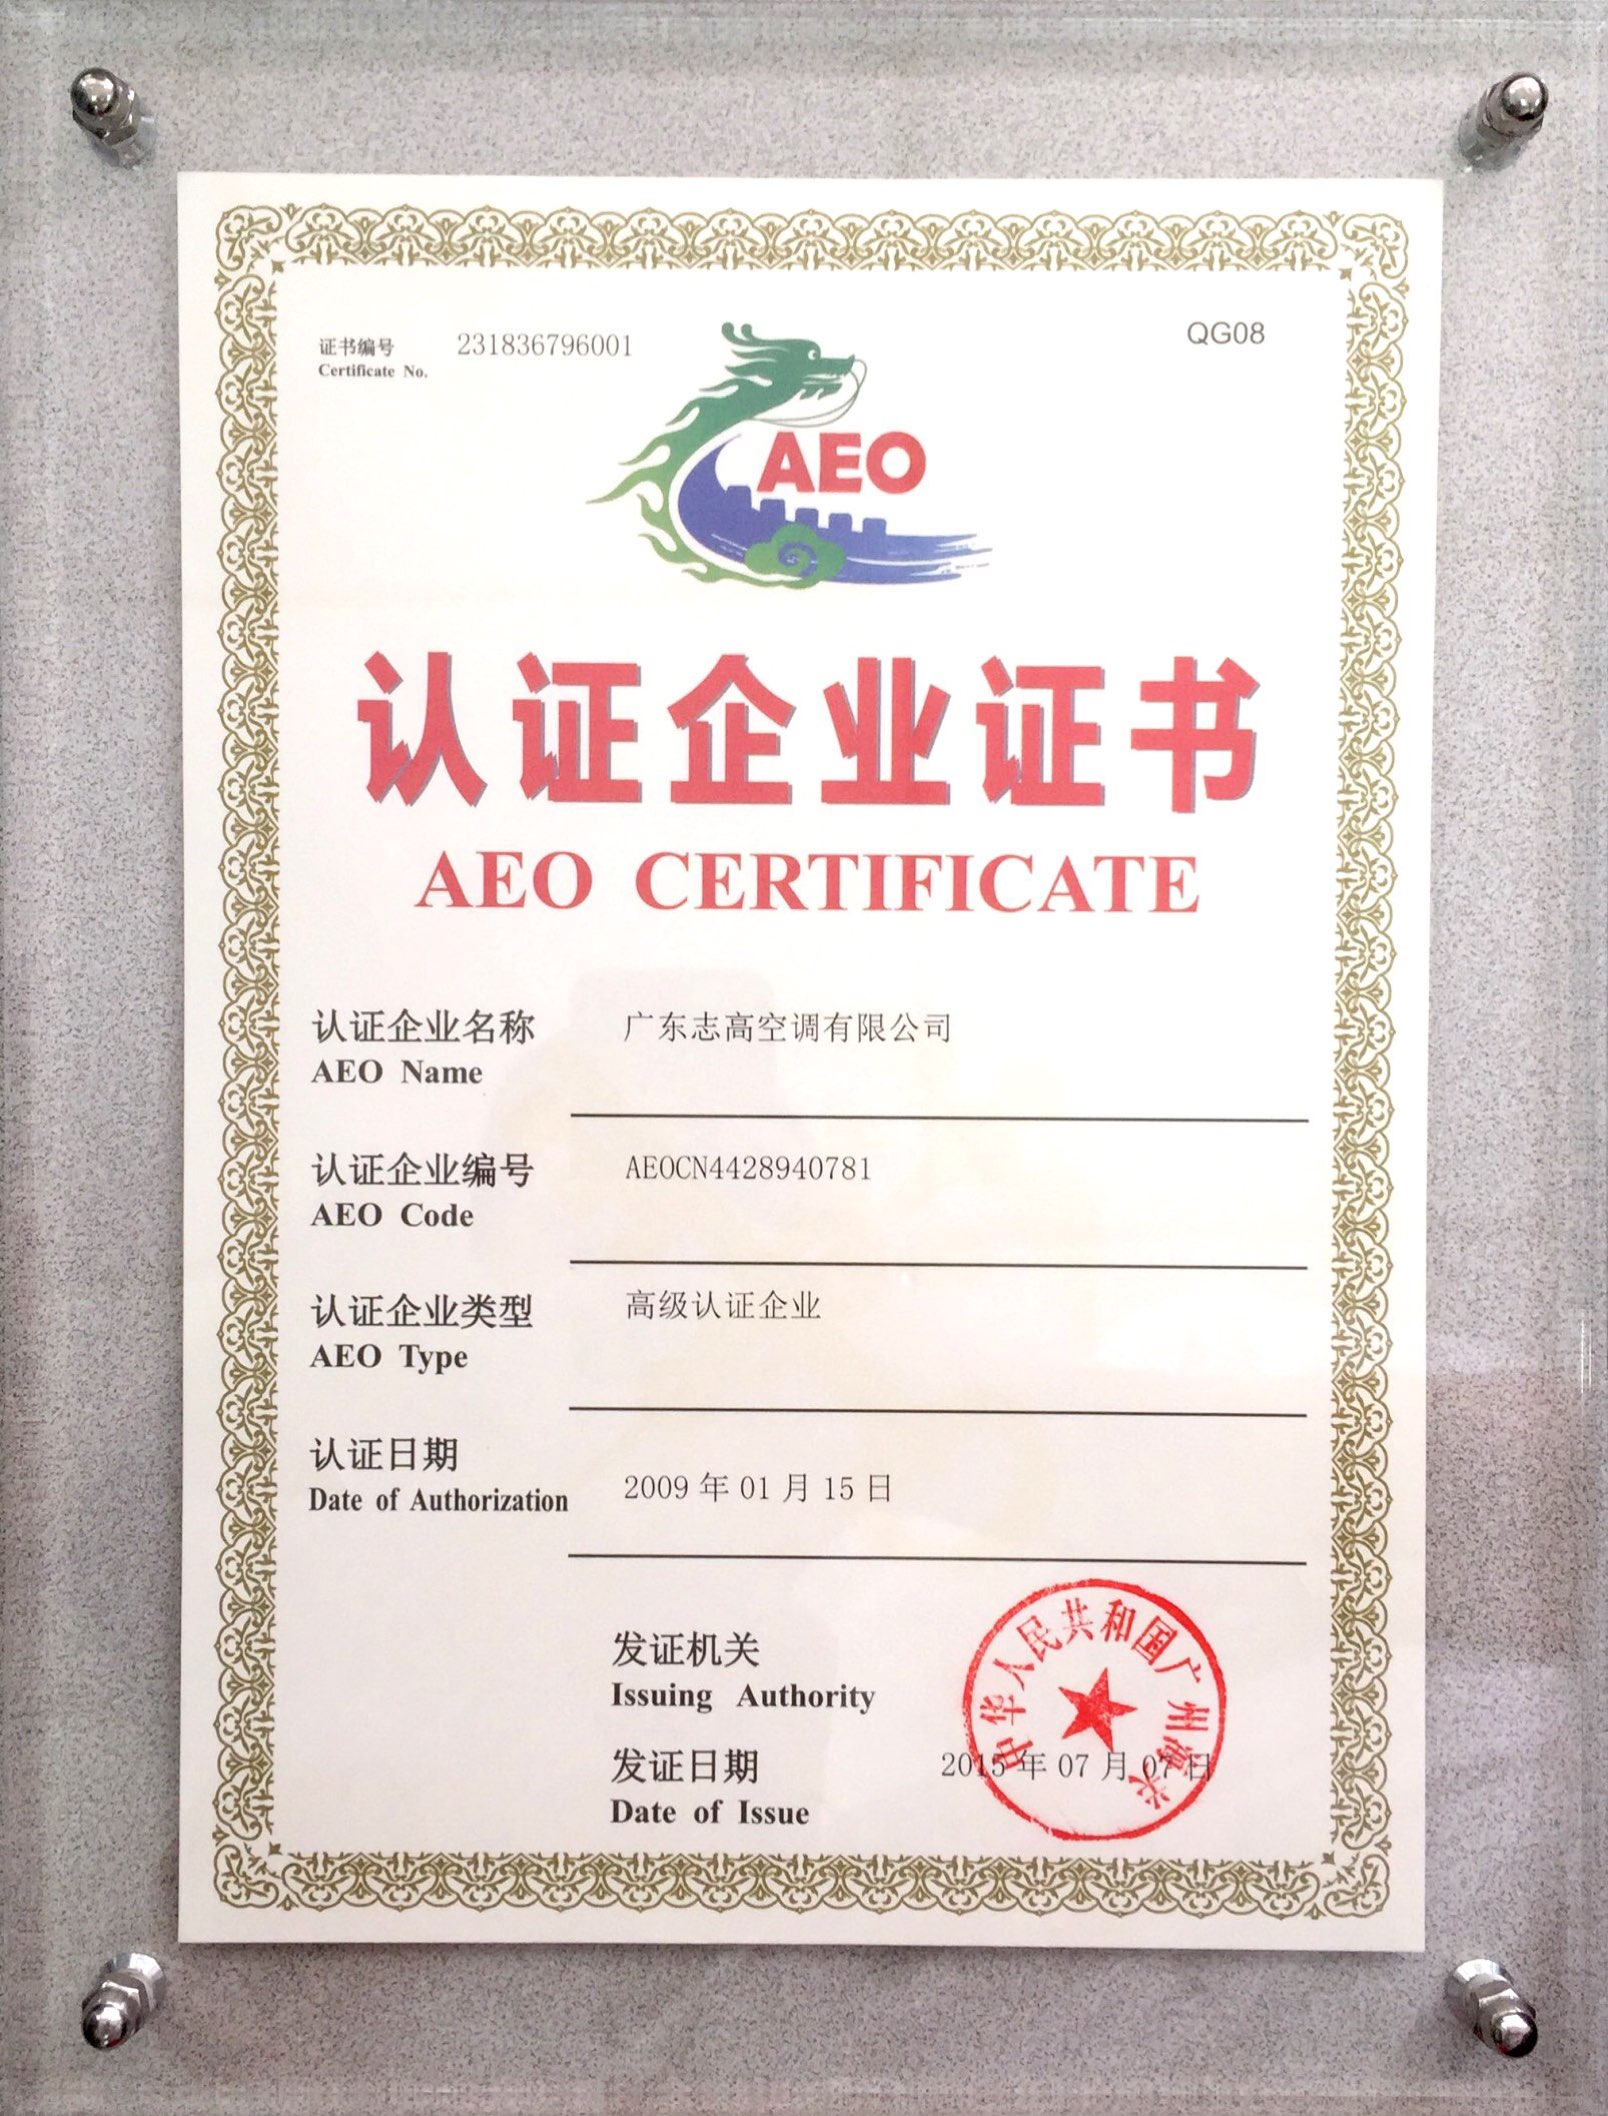 AEO Certificafe